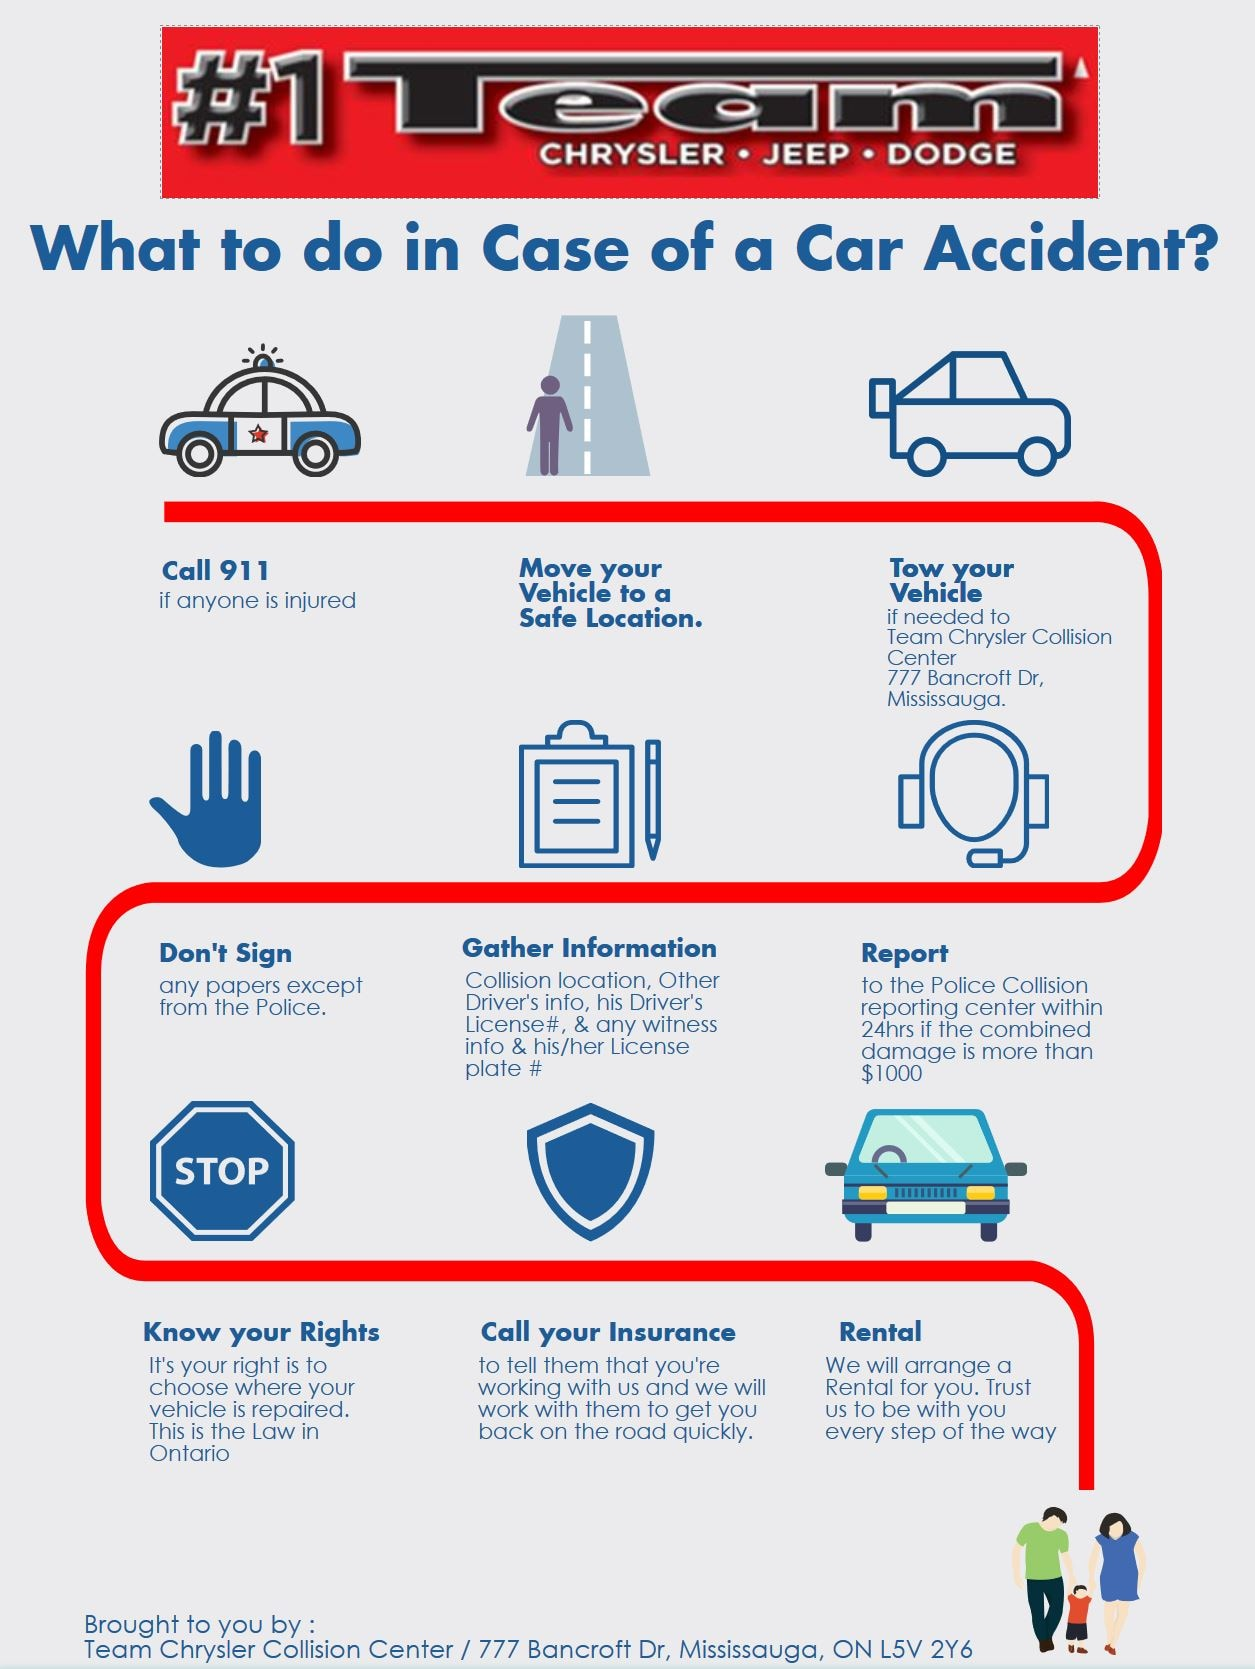 a step by step infographic of what to do in case of a car